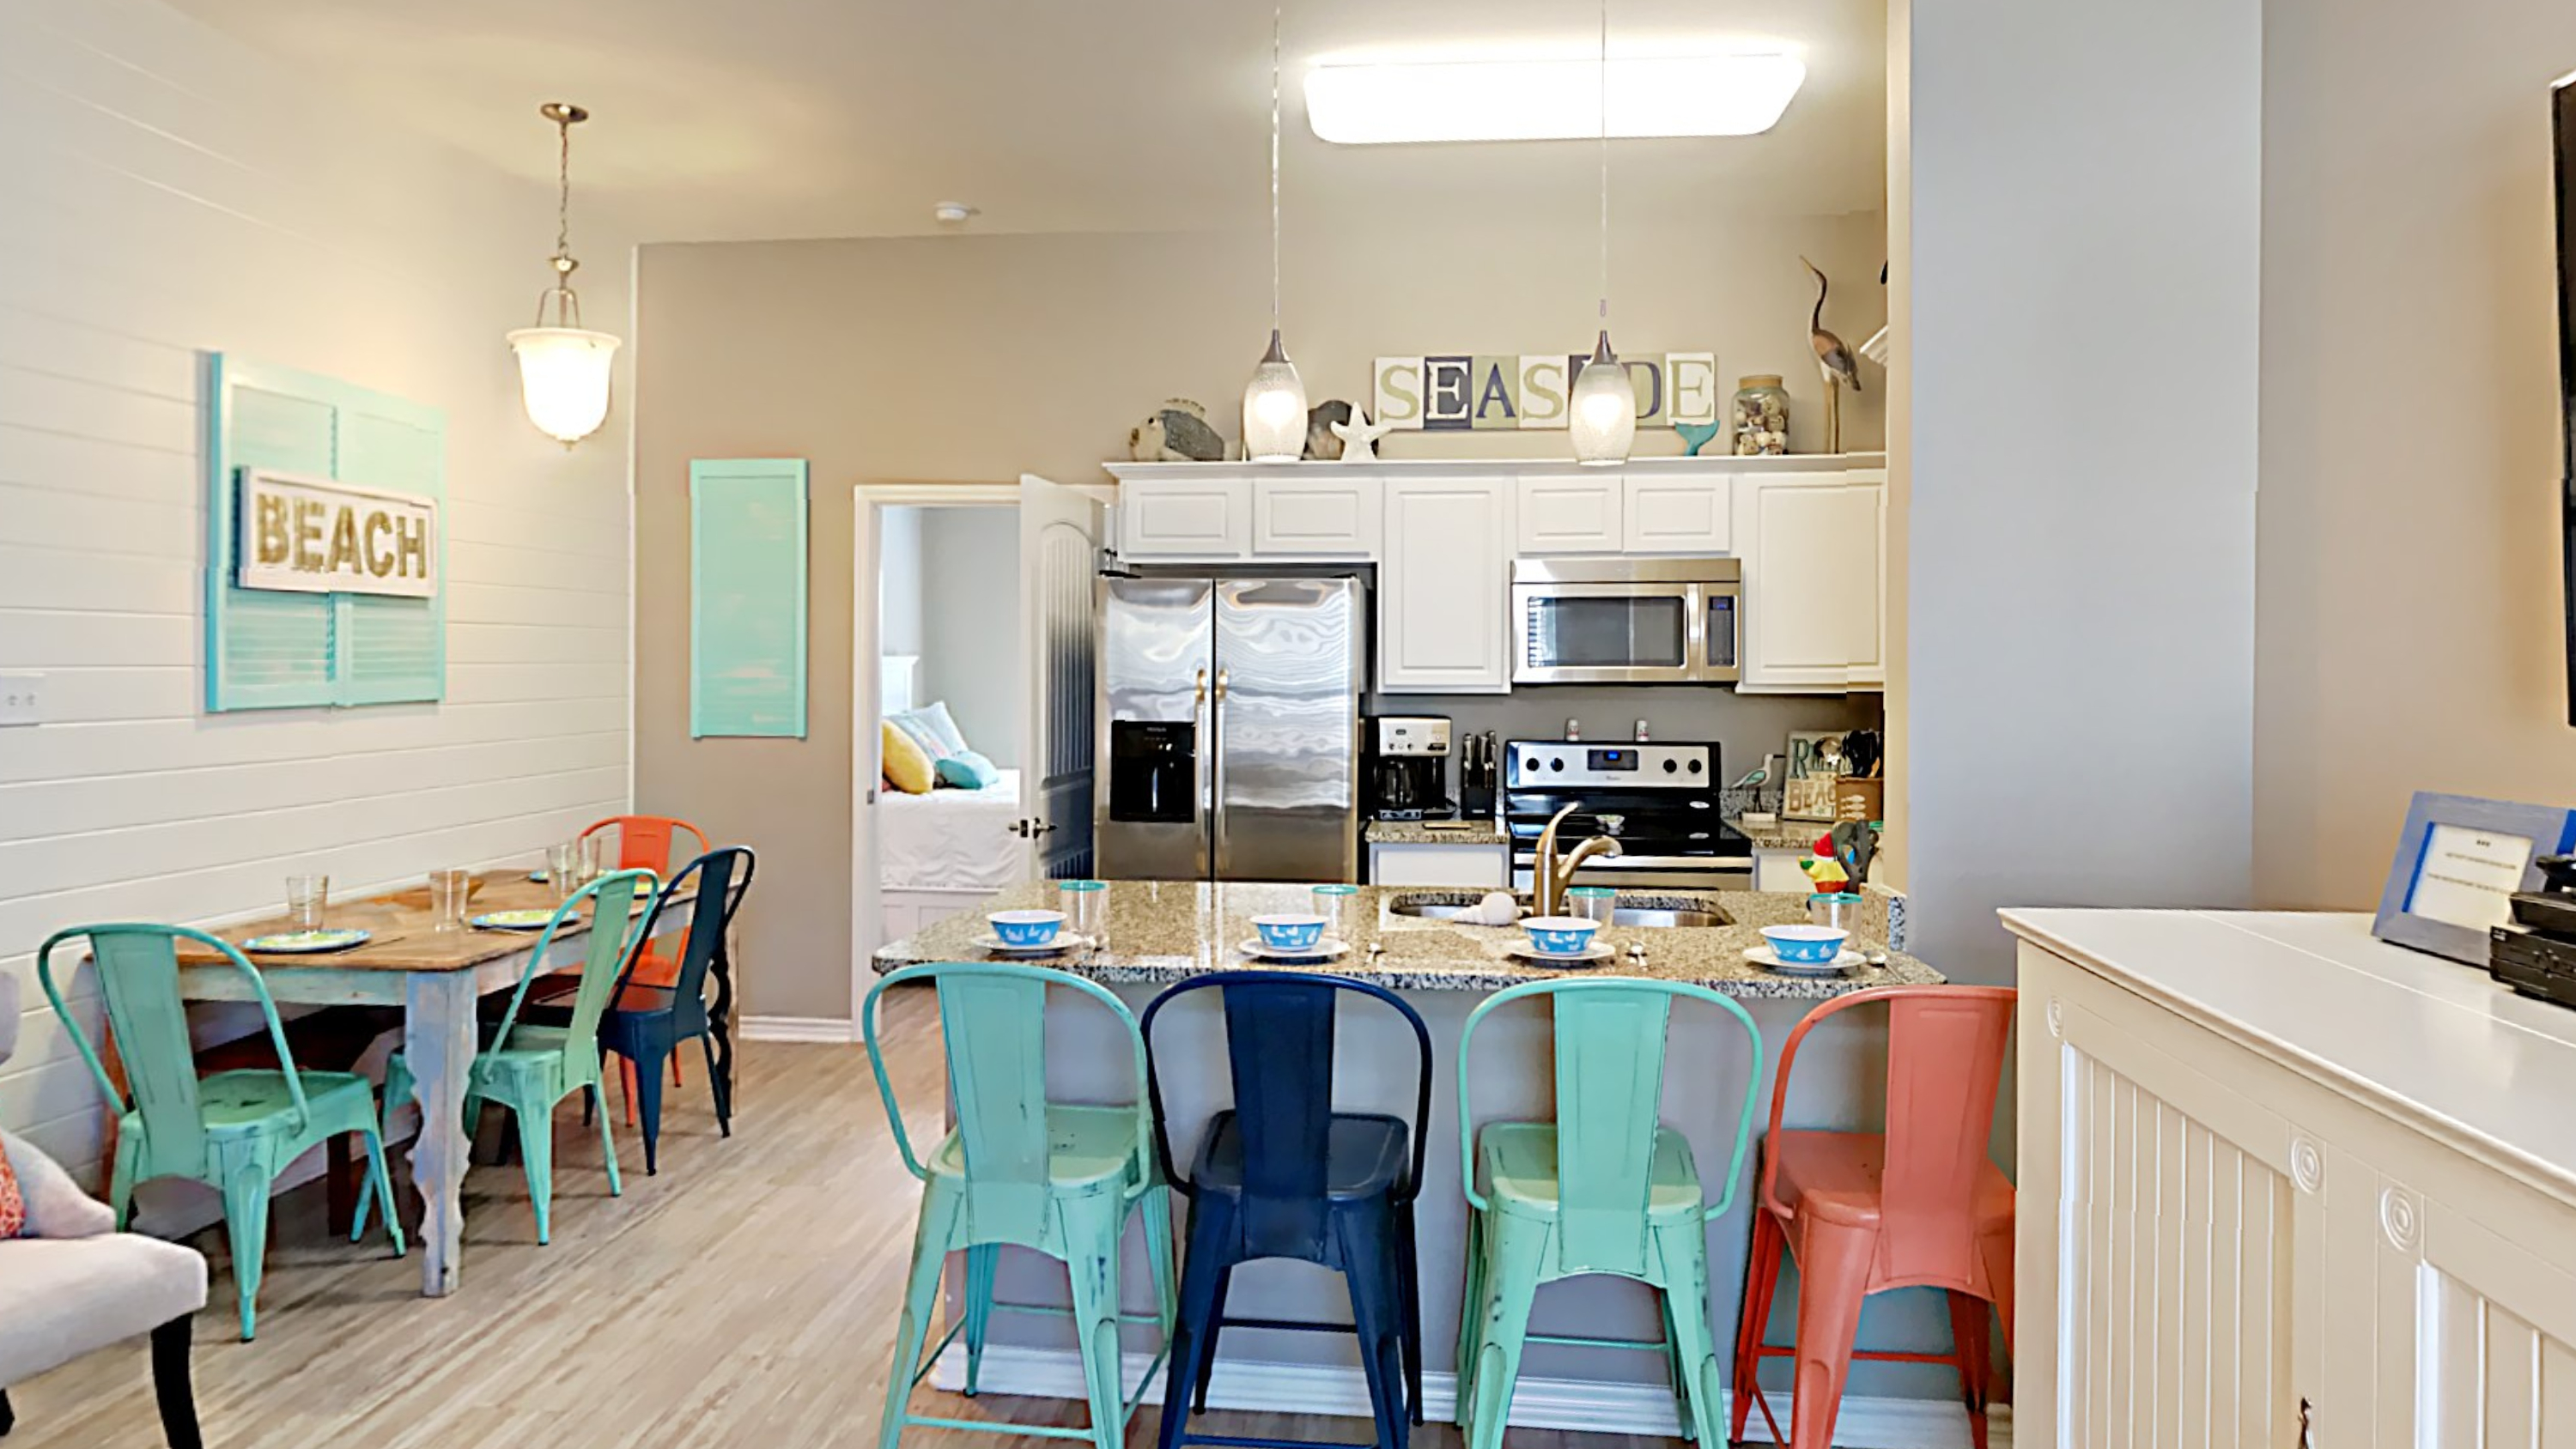 Corpus Christi TX Vacation Rental Welcome to your